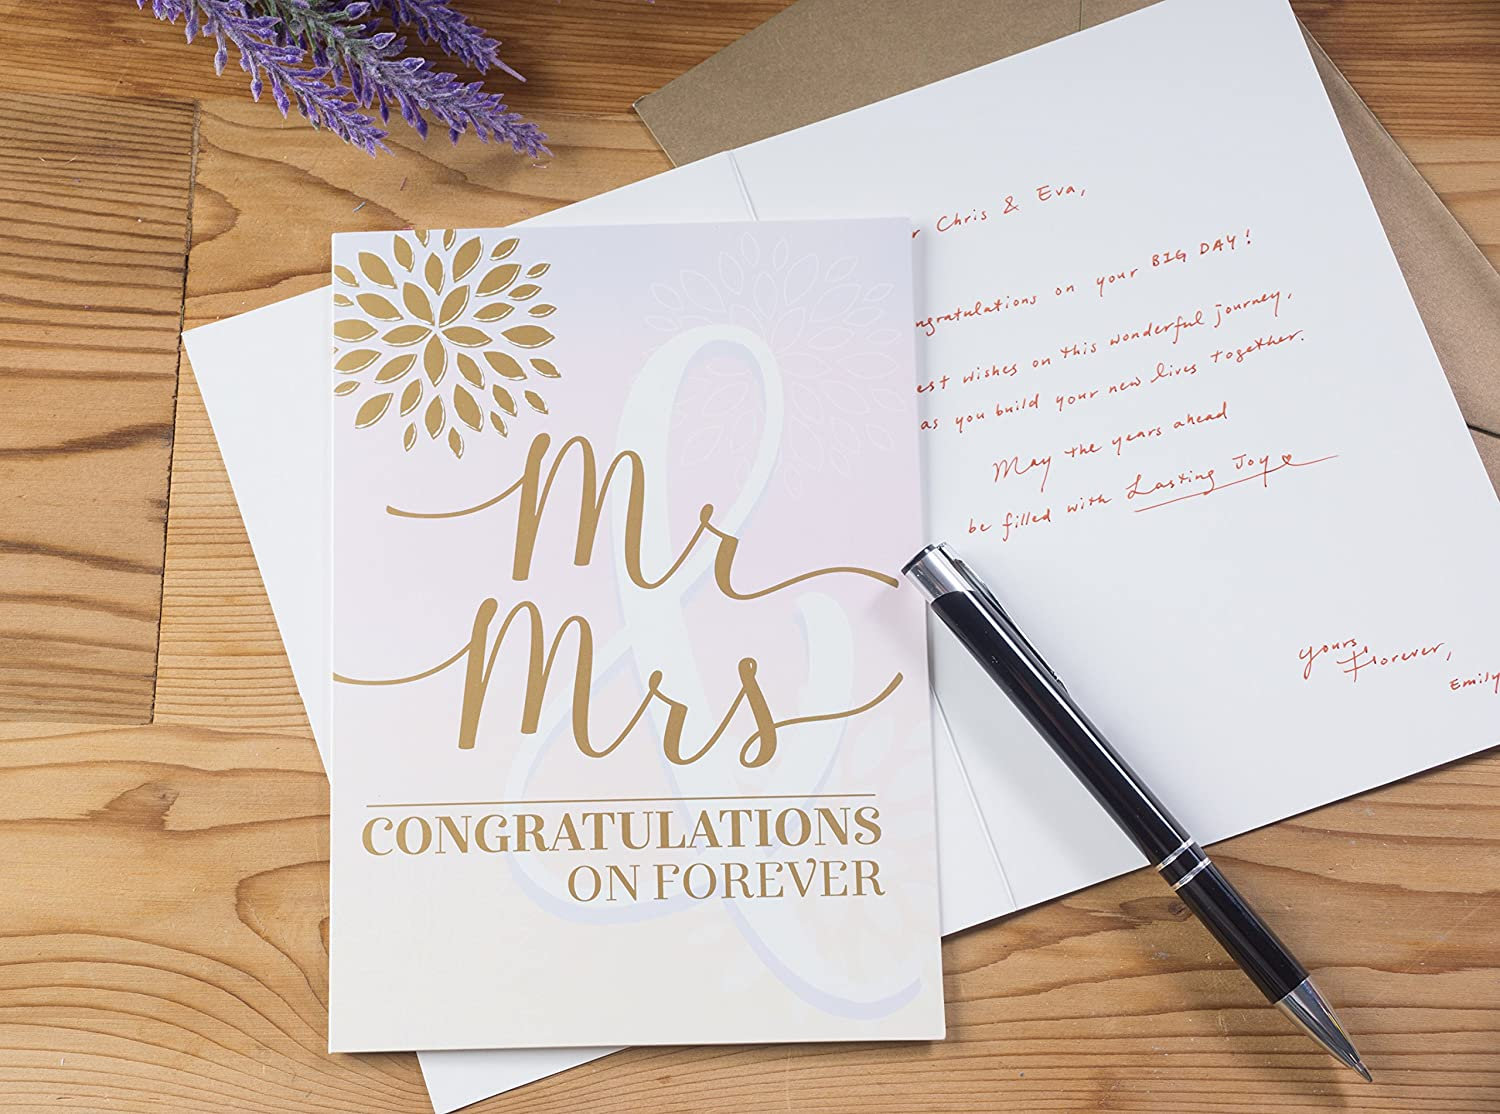 and Mrs Engagement Bride and Groom Wedding Greeting Cards 5 x 7 Inches 36-Pack Congratulations to Newlywed Mr Bridal Shower 6 Rustic Designs Bulk Greeting Cards and Envelopes for Wedding